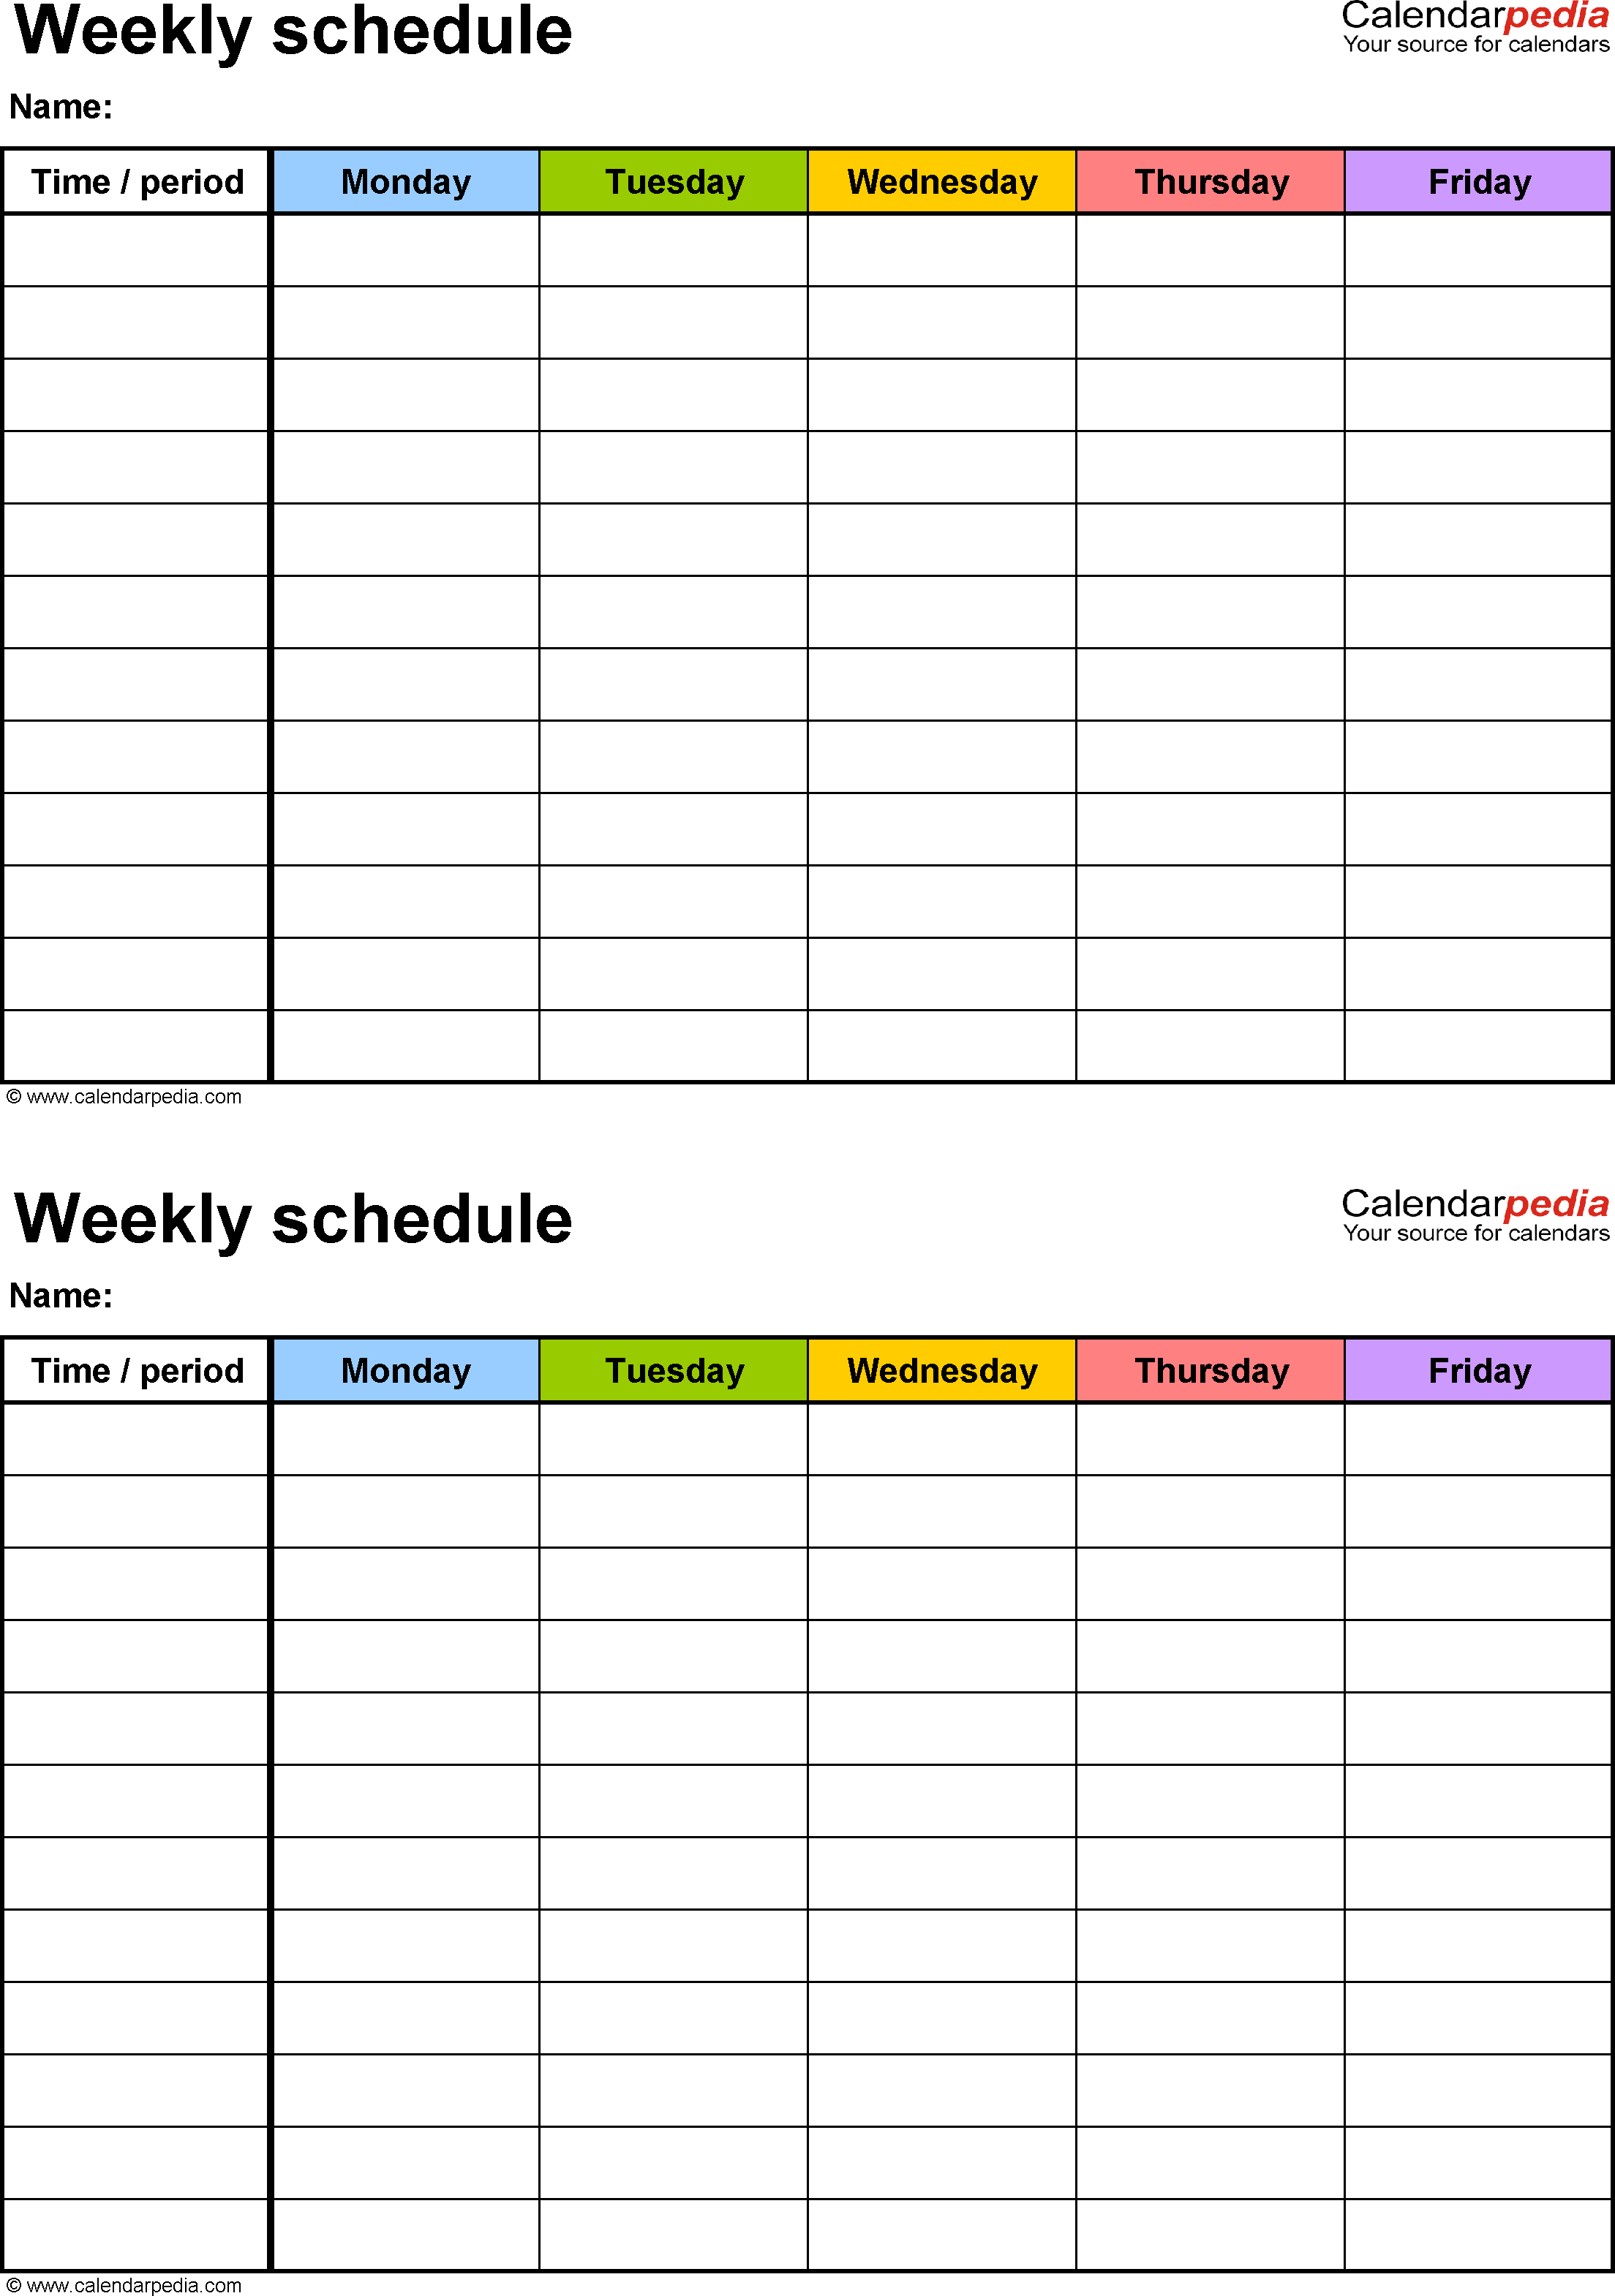 Free Weekly Schedule Templates For Pdf - 18 Templates within Printable Work Week Calendar Template